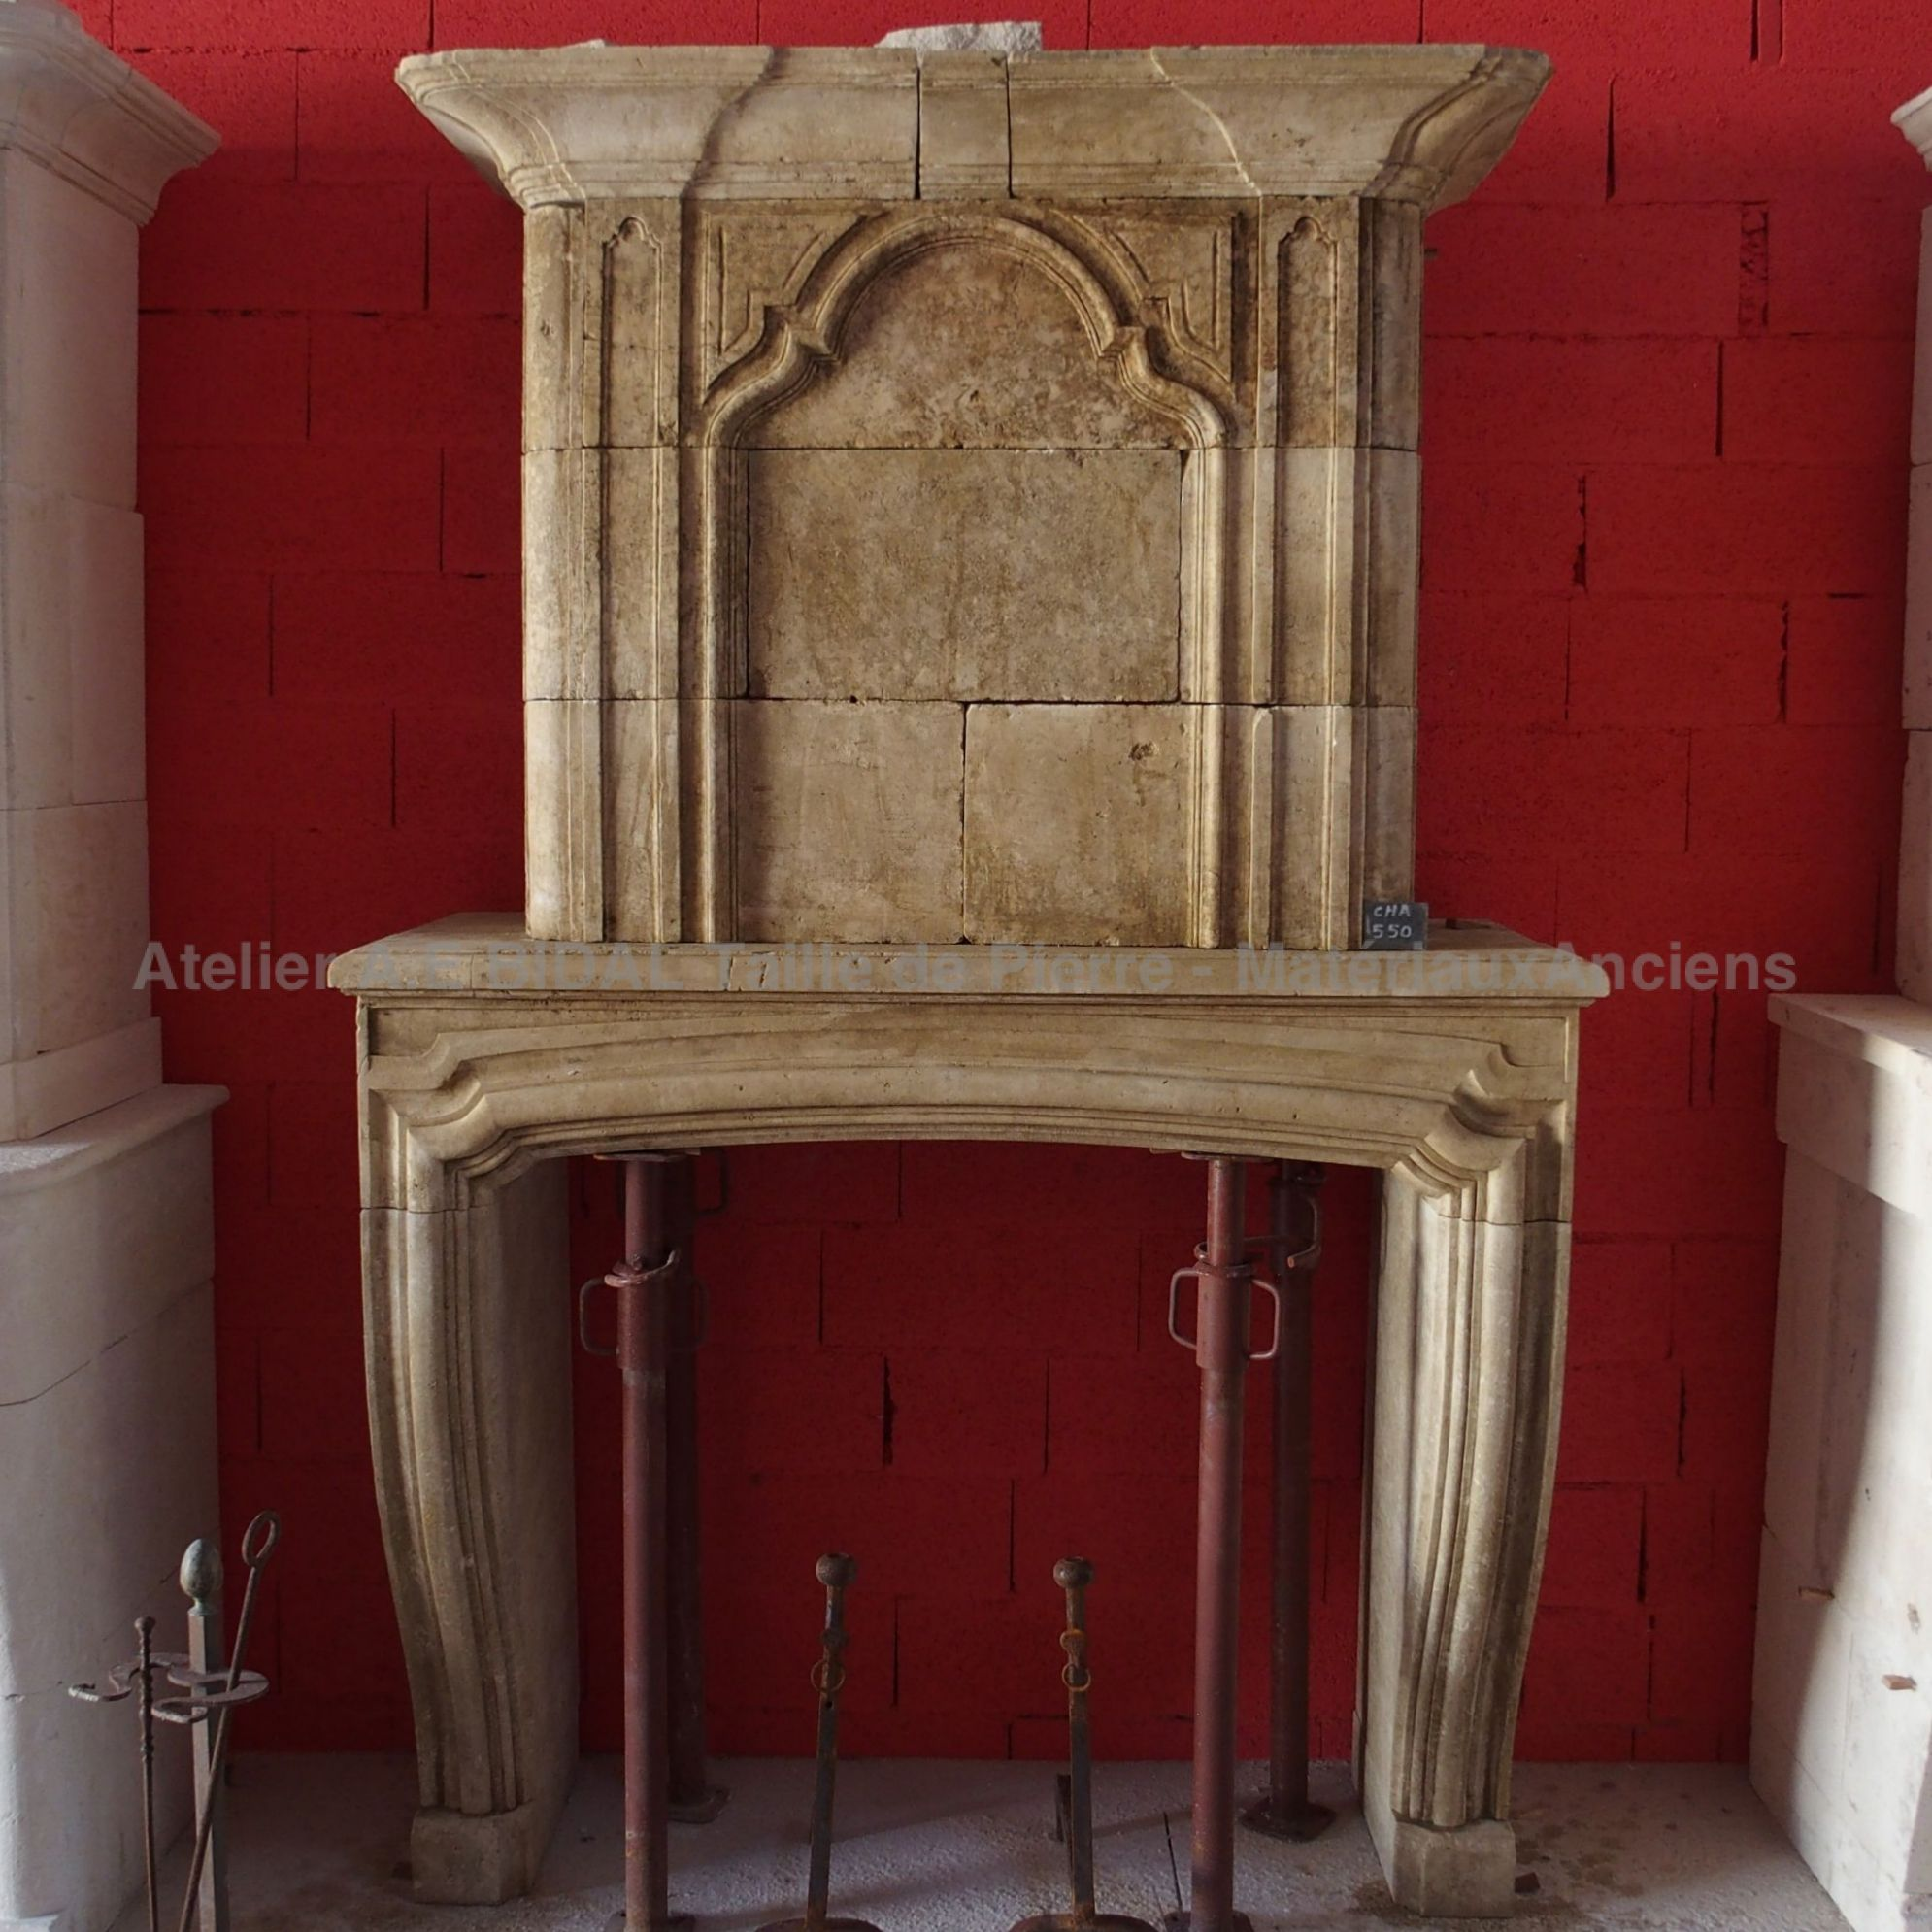 Lovely fireplace with overmantle found in a disused military building.